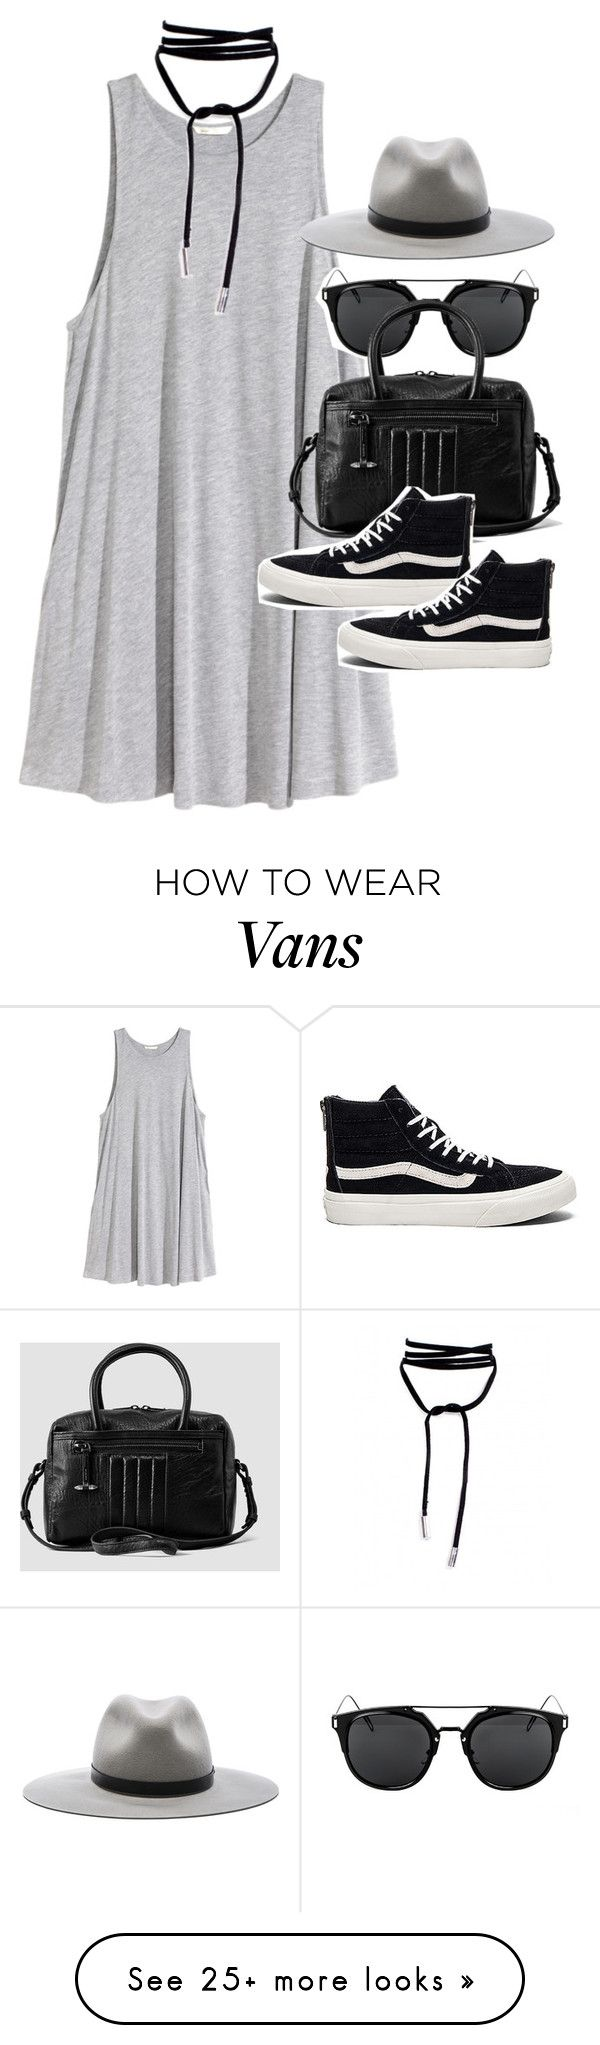 """Outfit with a jersey dress and Vans"" by ferned on Polyvore featuring H&M, rag & bone, AllSaints and Vans"